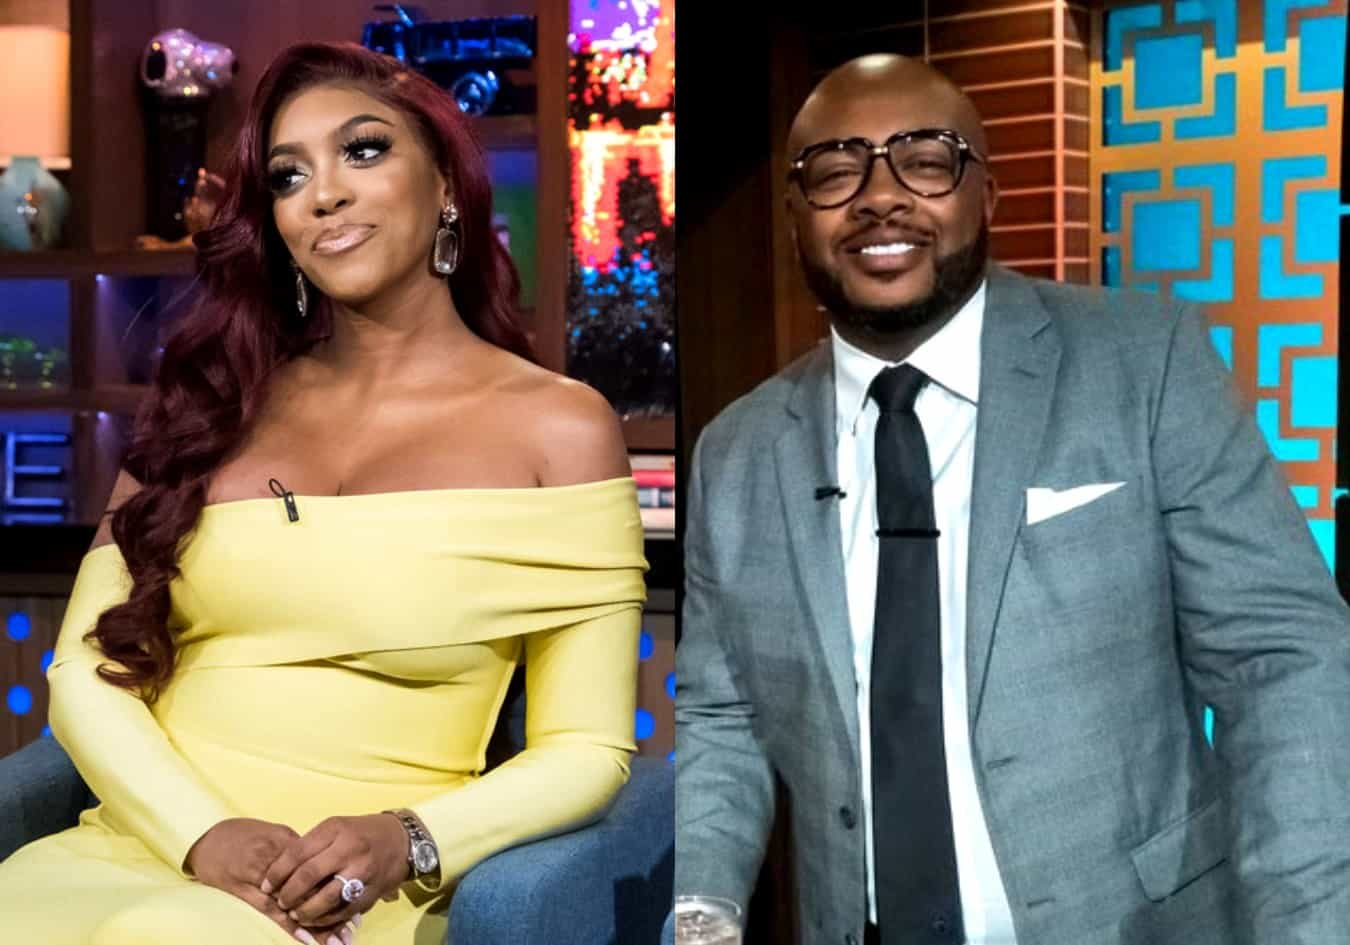 PHOTO: RHOA Star Porsha Williams' Fiancé Dennis McKinley Seen Hanging Out With Four Women at 4am Without Porsha in Sight